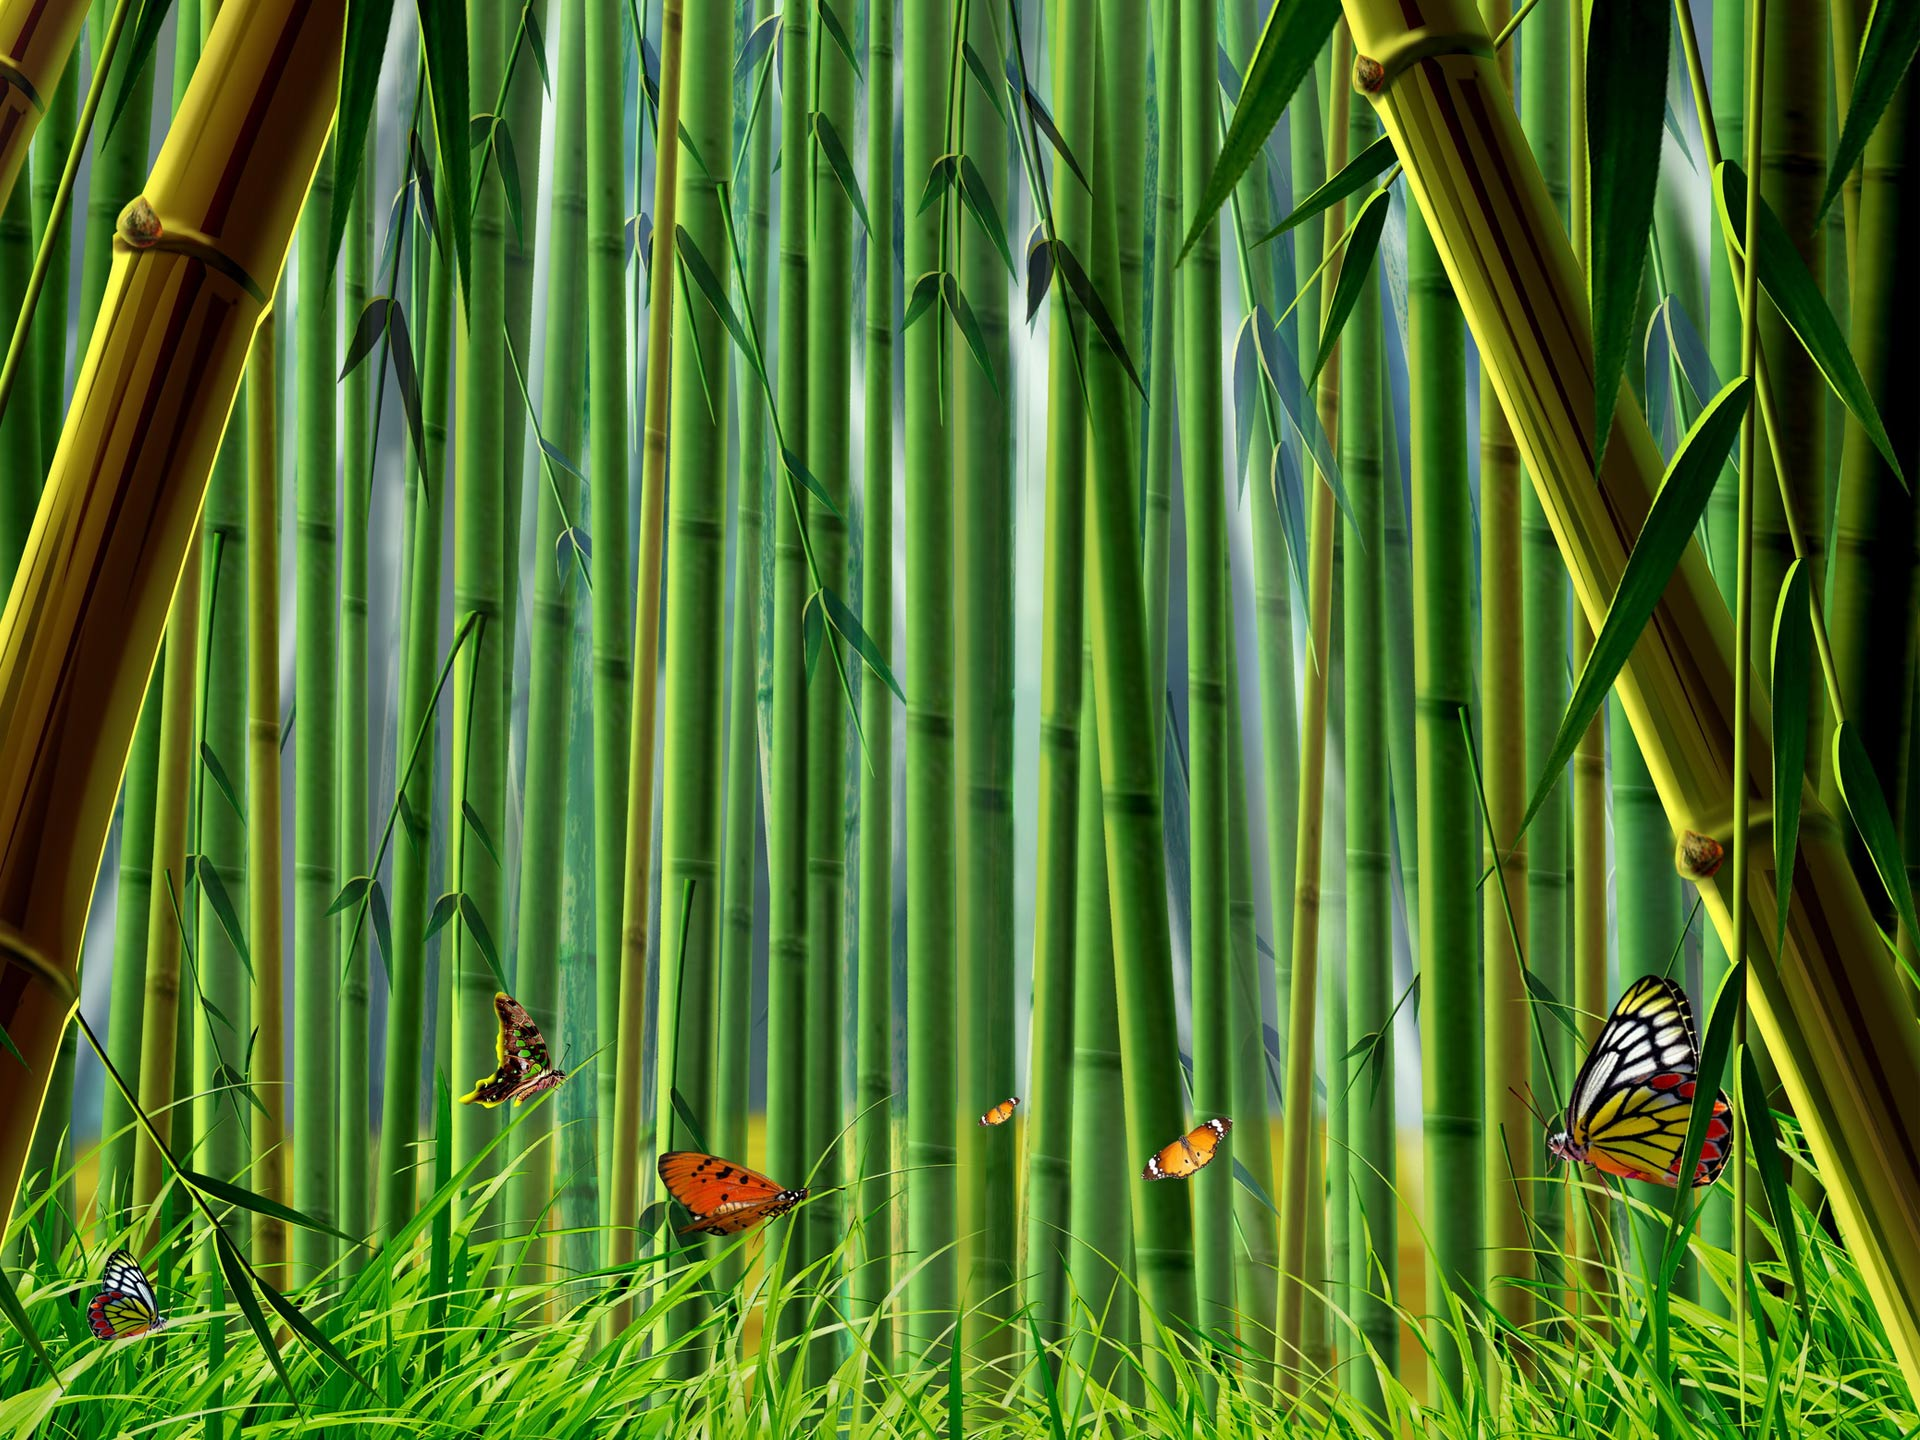 Forest clipart bamboo forest Clip clipart Bamboo Art Bamboo